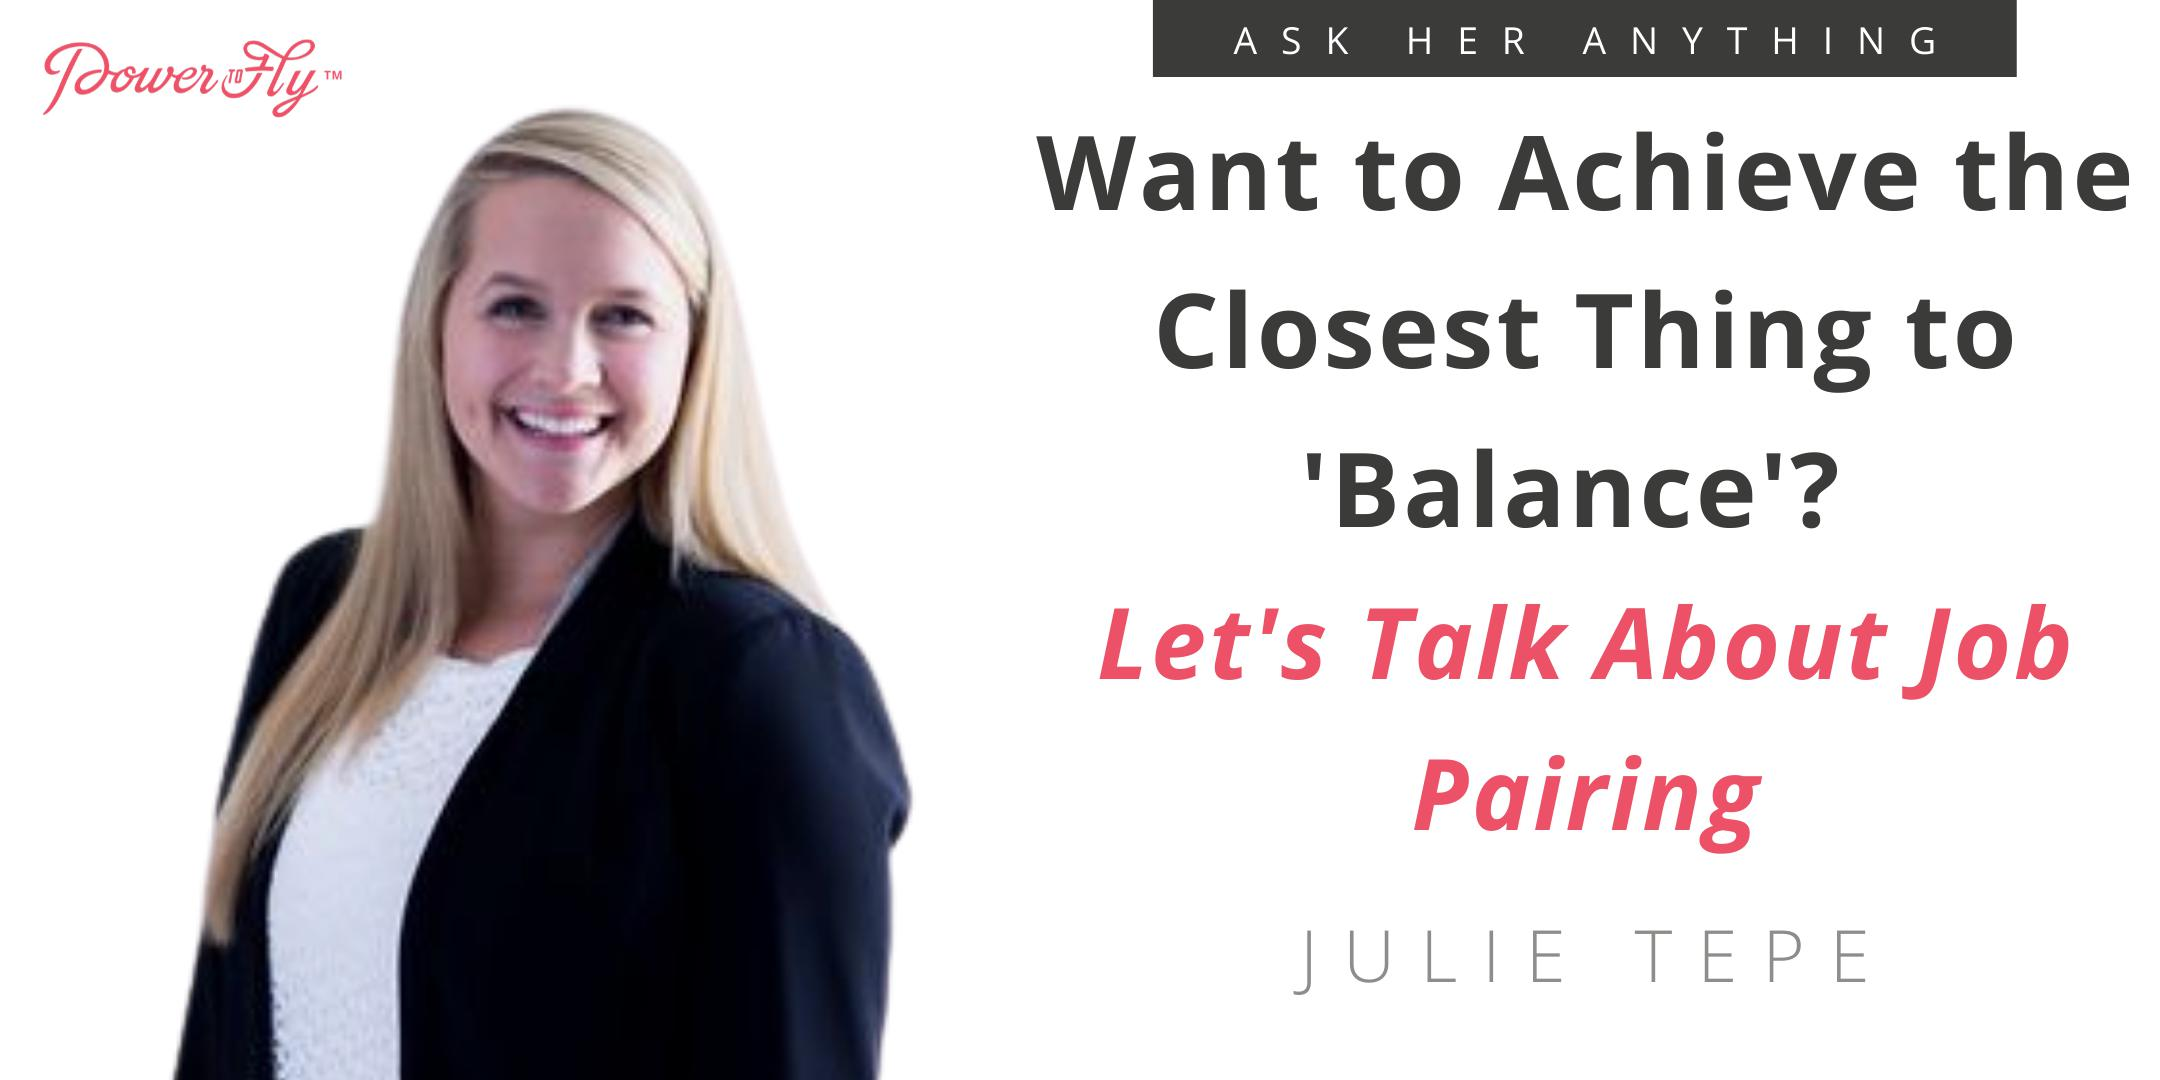 Want to Achieve the Closest Thing to 'Balance'? Let's Talk About Job Pairing